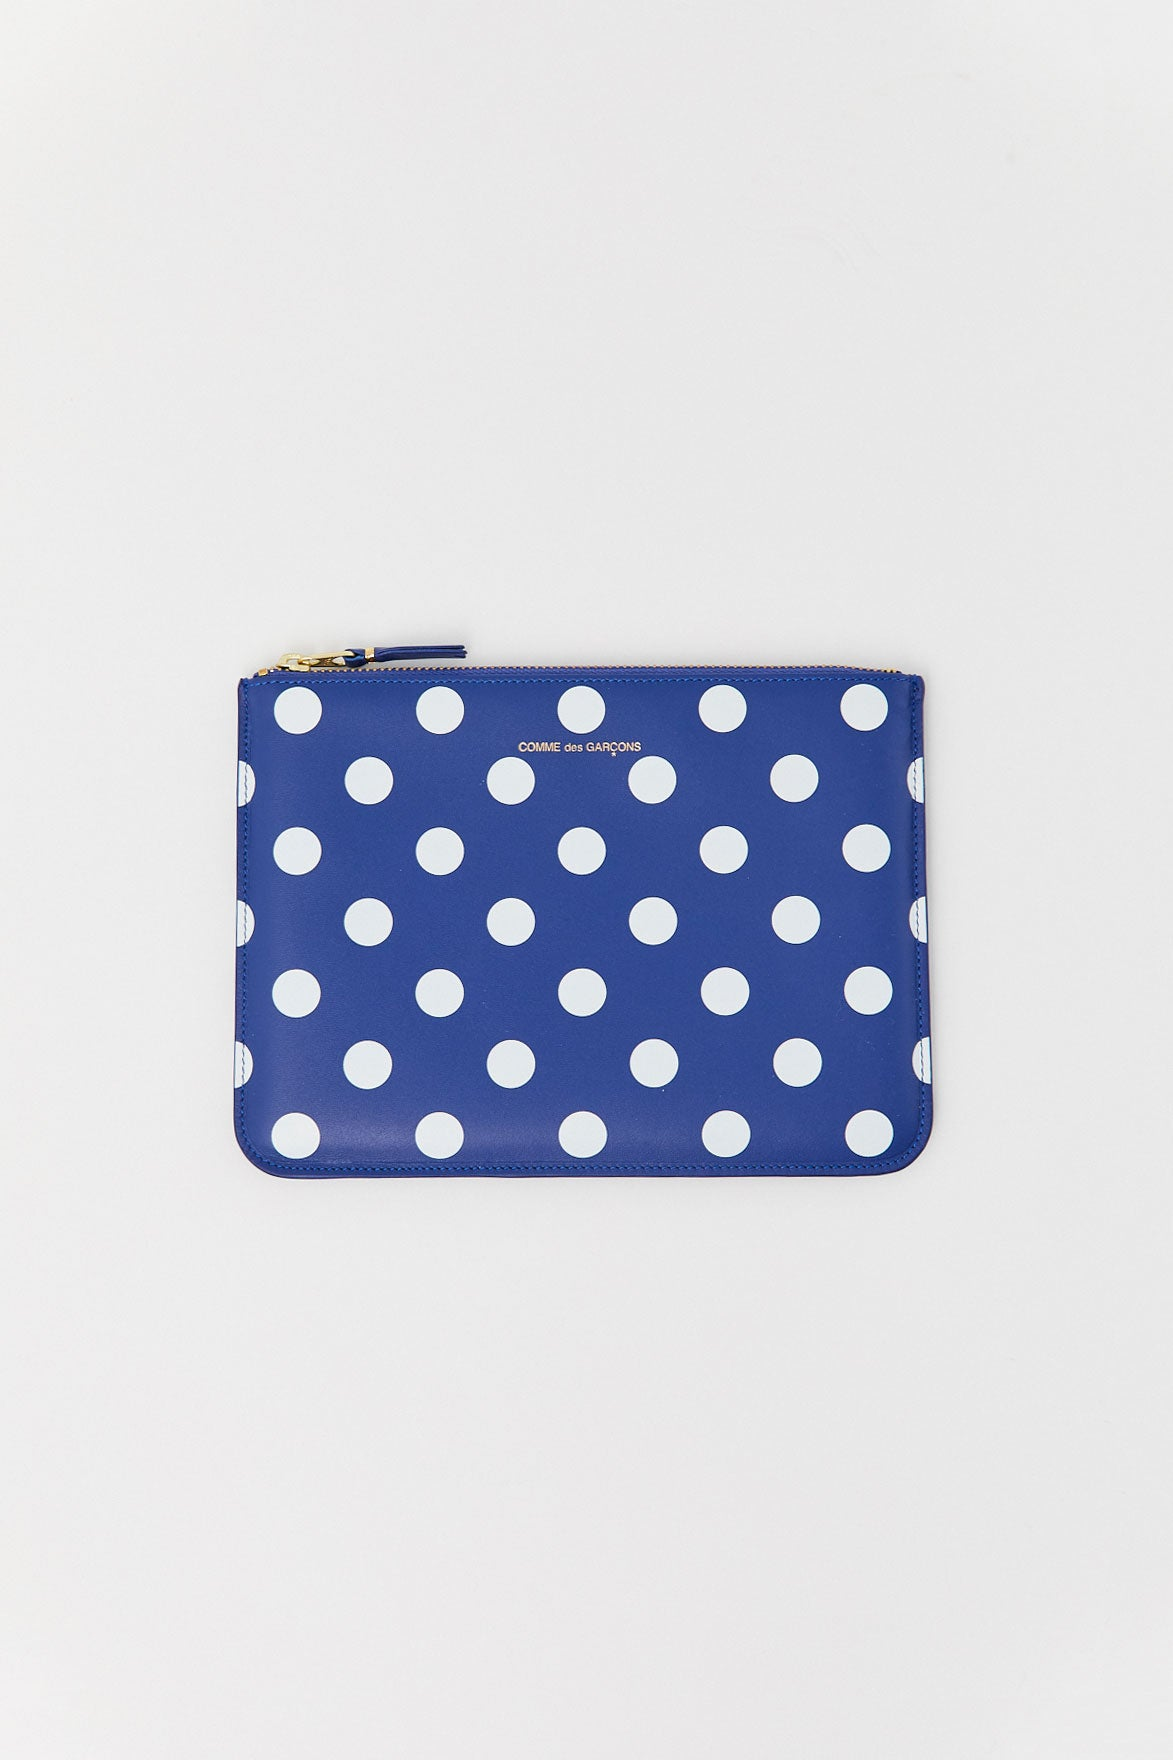 Comme des Garçons - Polka Dot Printed Pouch, Navy